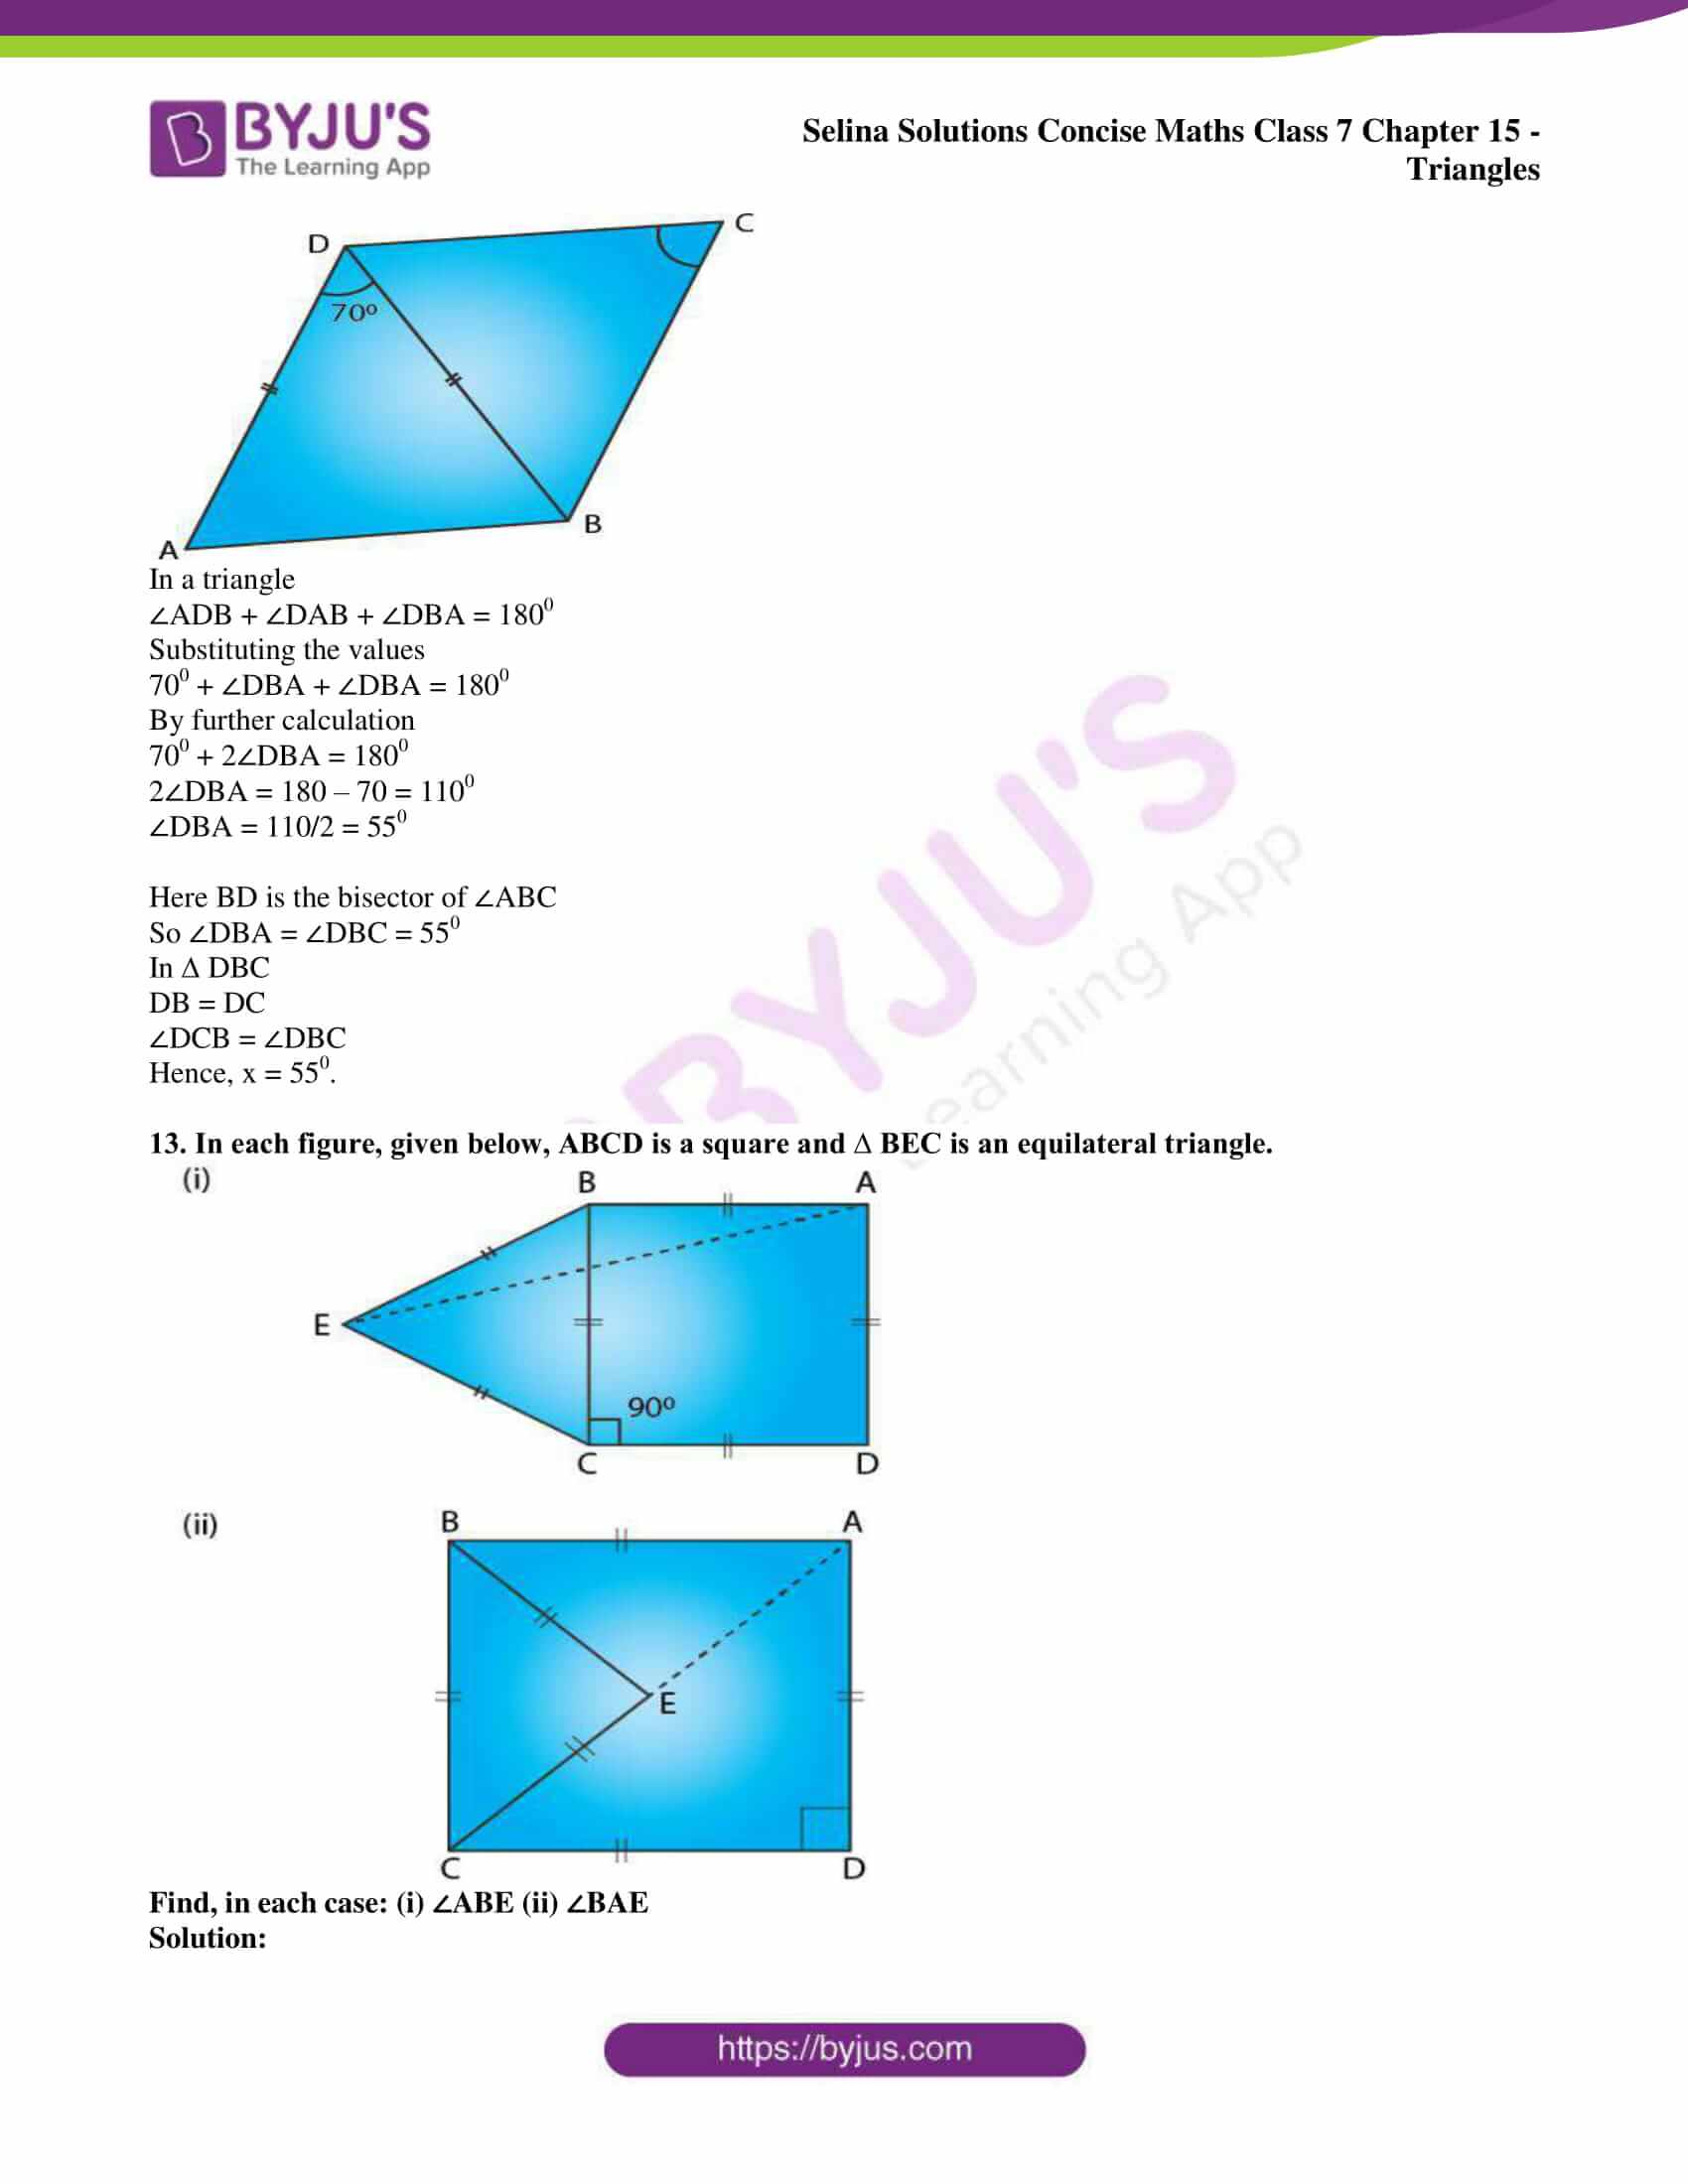 selina sol concise maths class 7 chapter 15 ex b 11